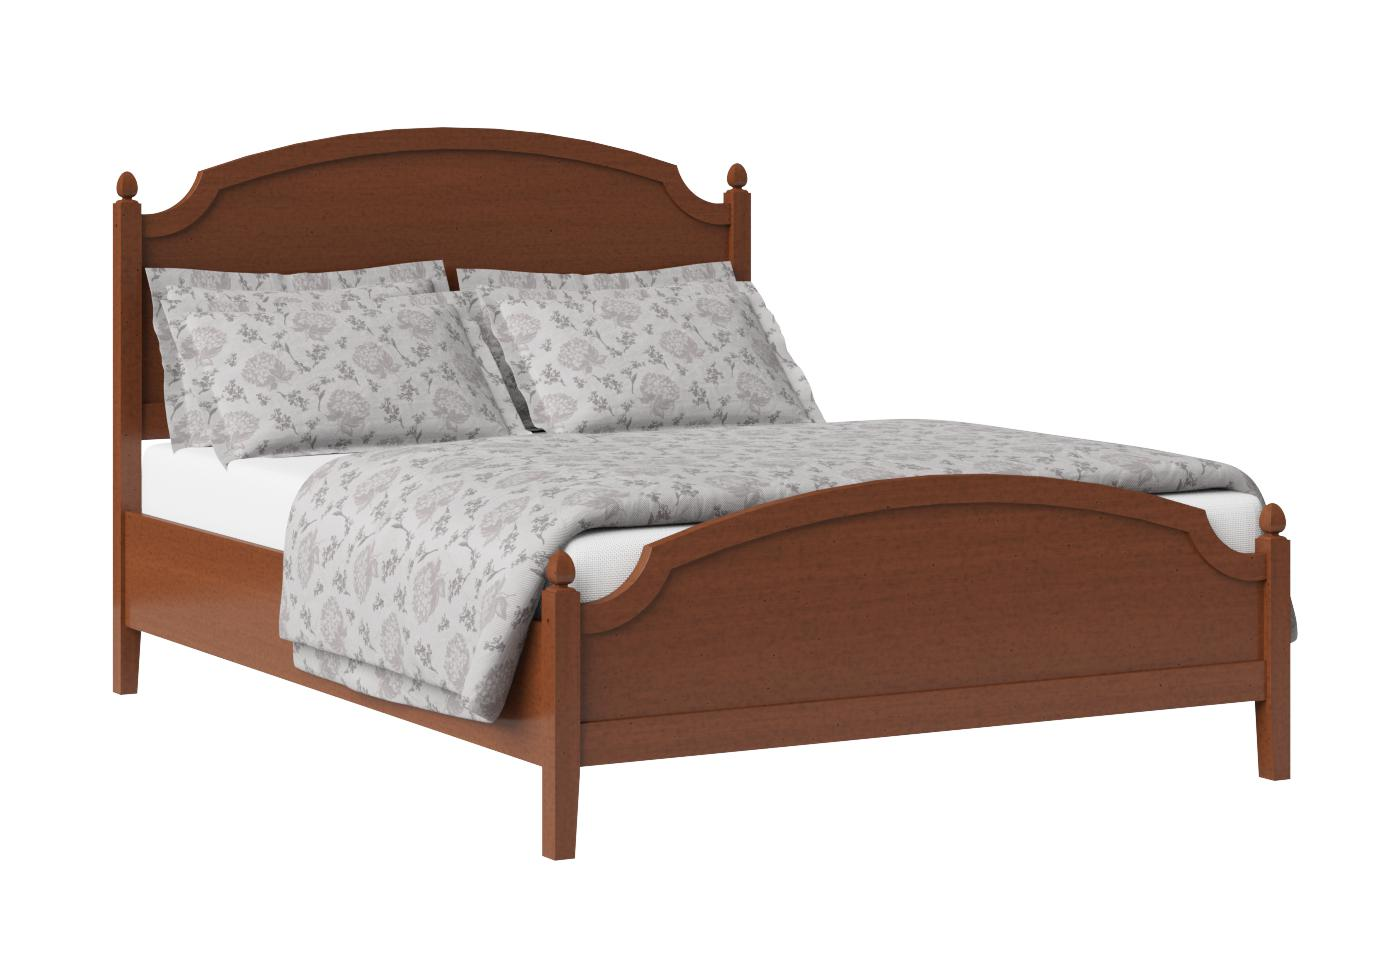 Cutout of Kipling low footend wood bed in a dark cherry finish